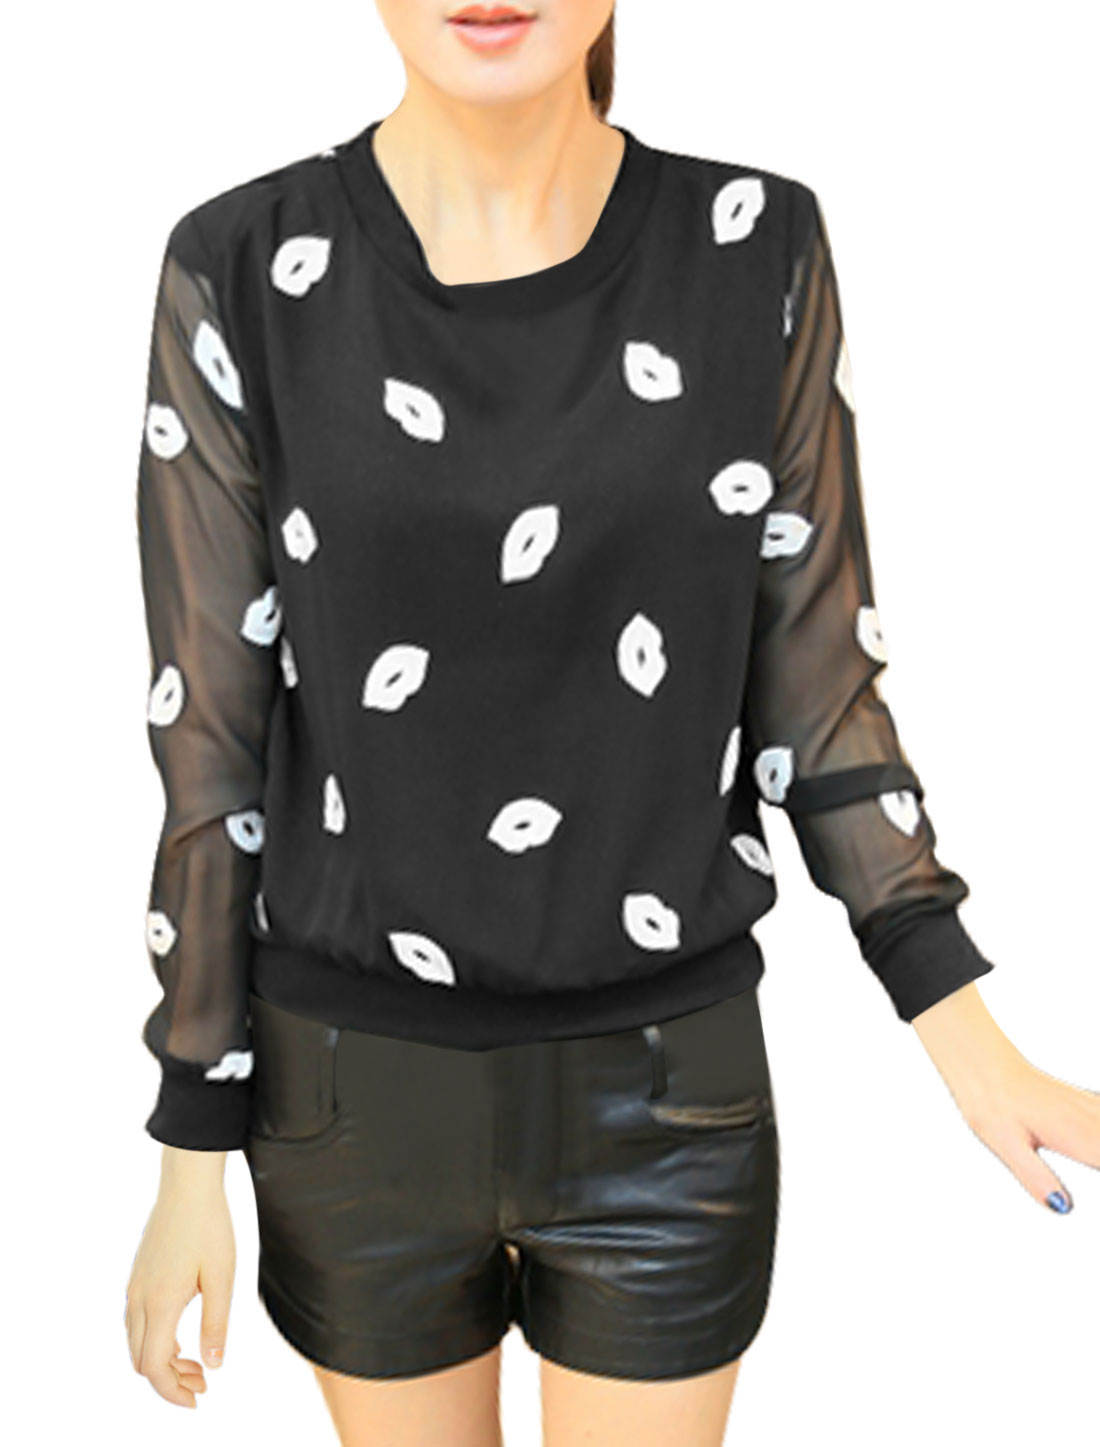 Women Round Neck Lips Embroidery Long Sleeves Leisure Chiffon Shirt Black S